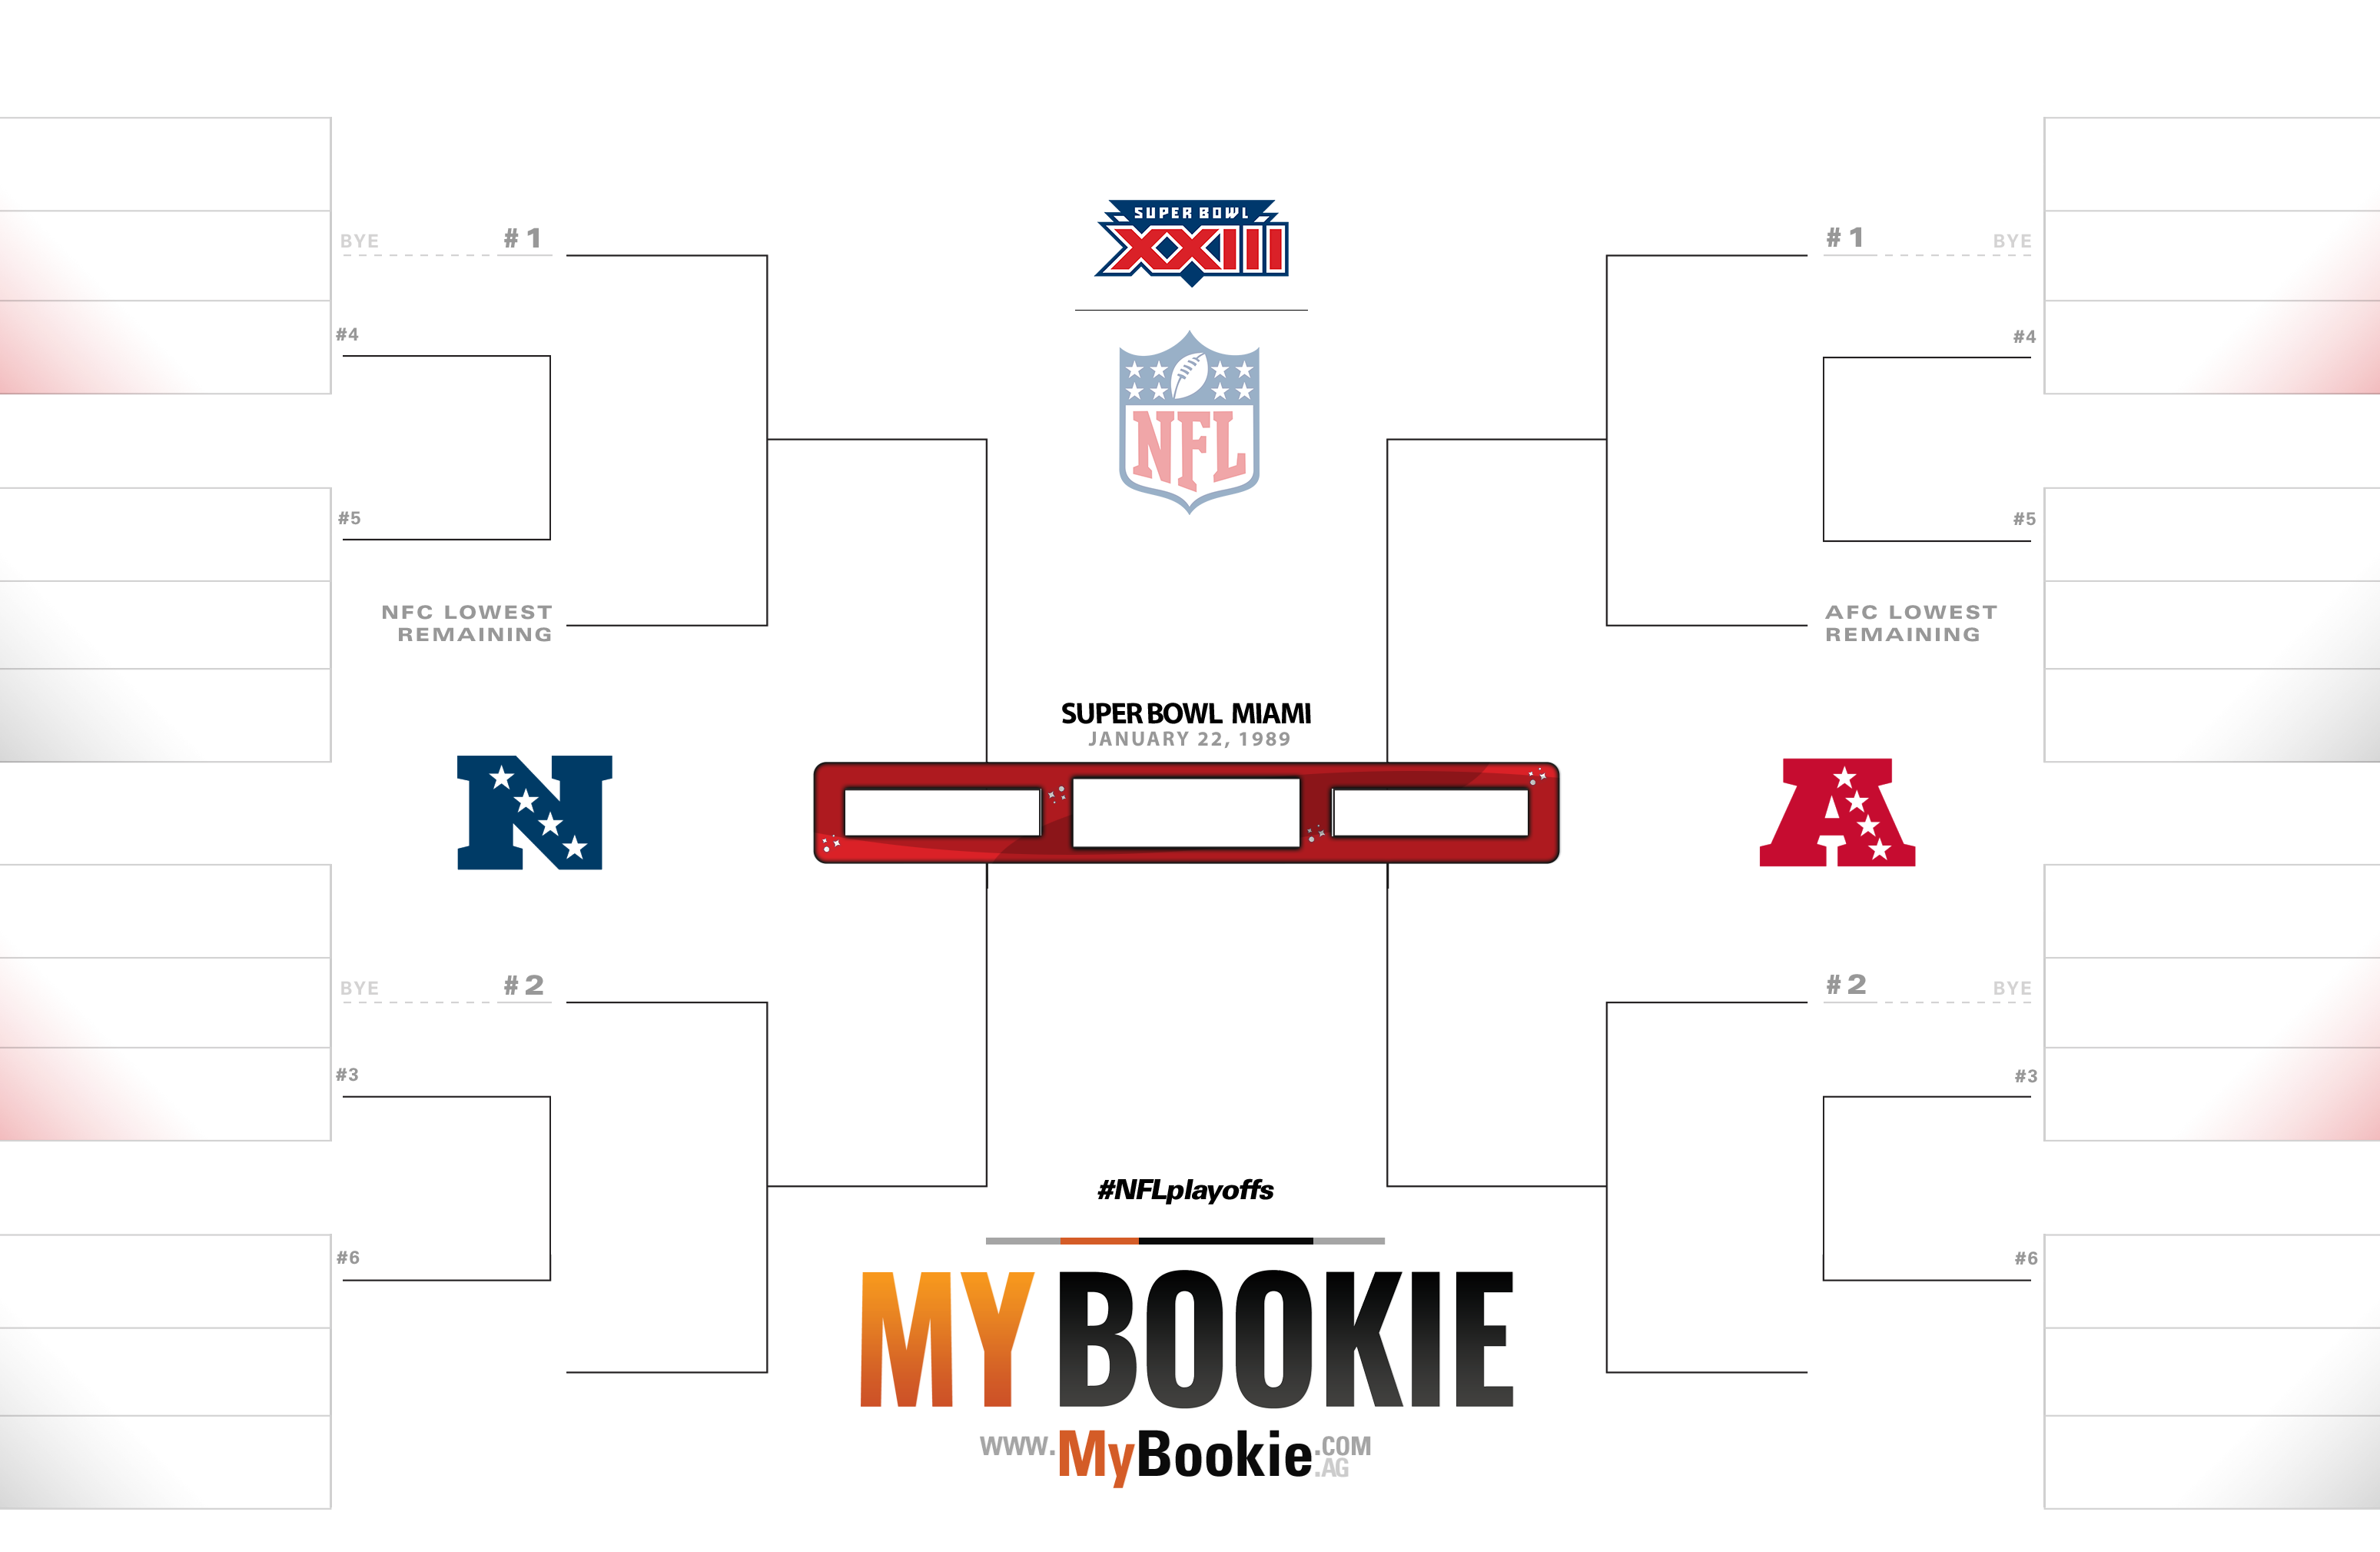 NFL Playoffs / Superbowl 1989 Printable Bracket